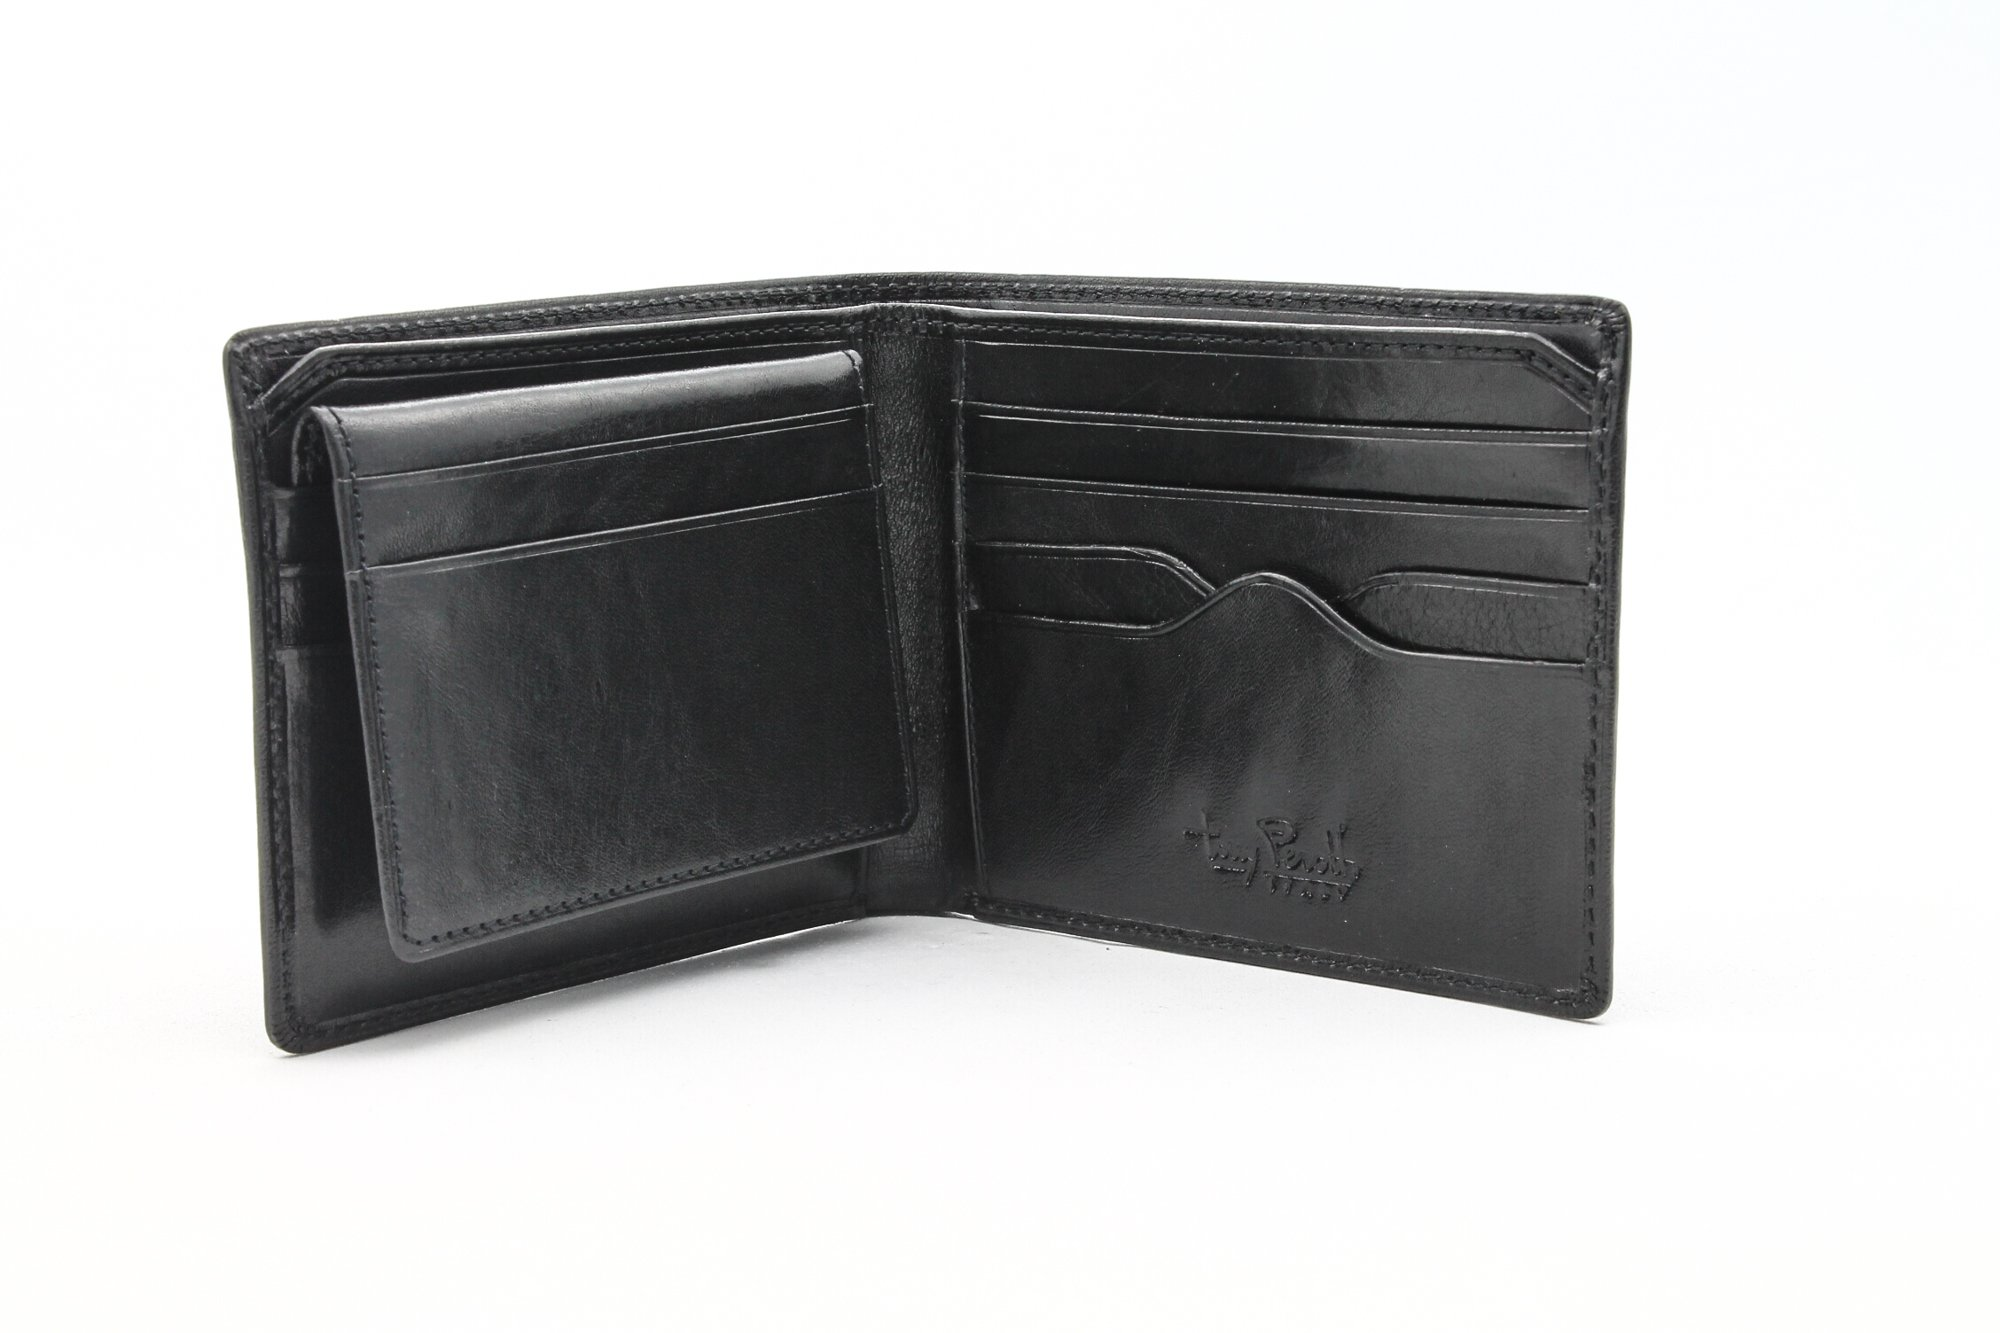 Tony Perotti Italian Leather Bifold Wallet With Removable Id Card Case, Black Bi-Fold Wallet, Black by Luggage Depot USA, LLC